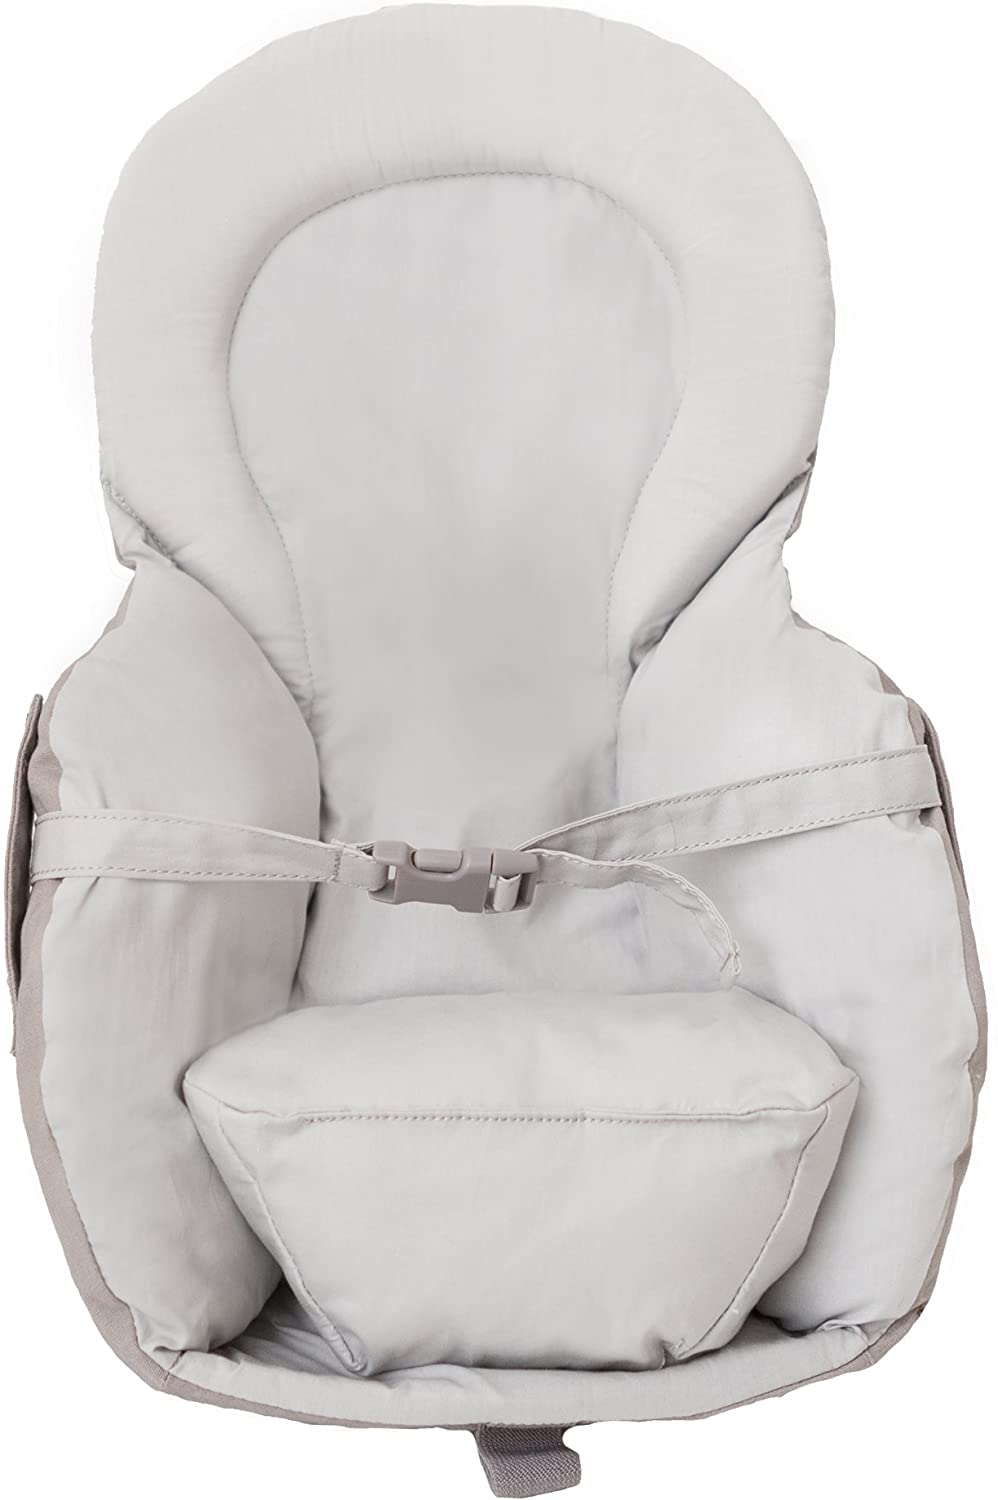 Infant Insert - Grey